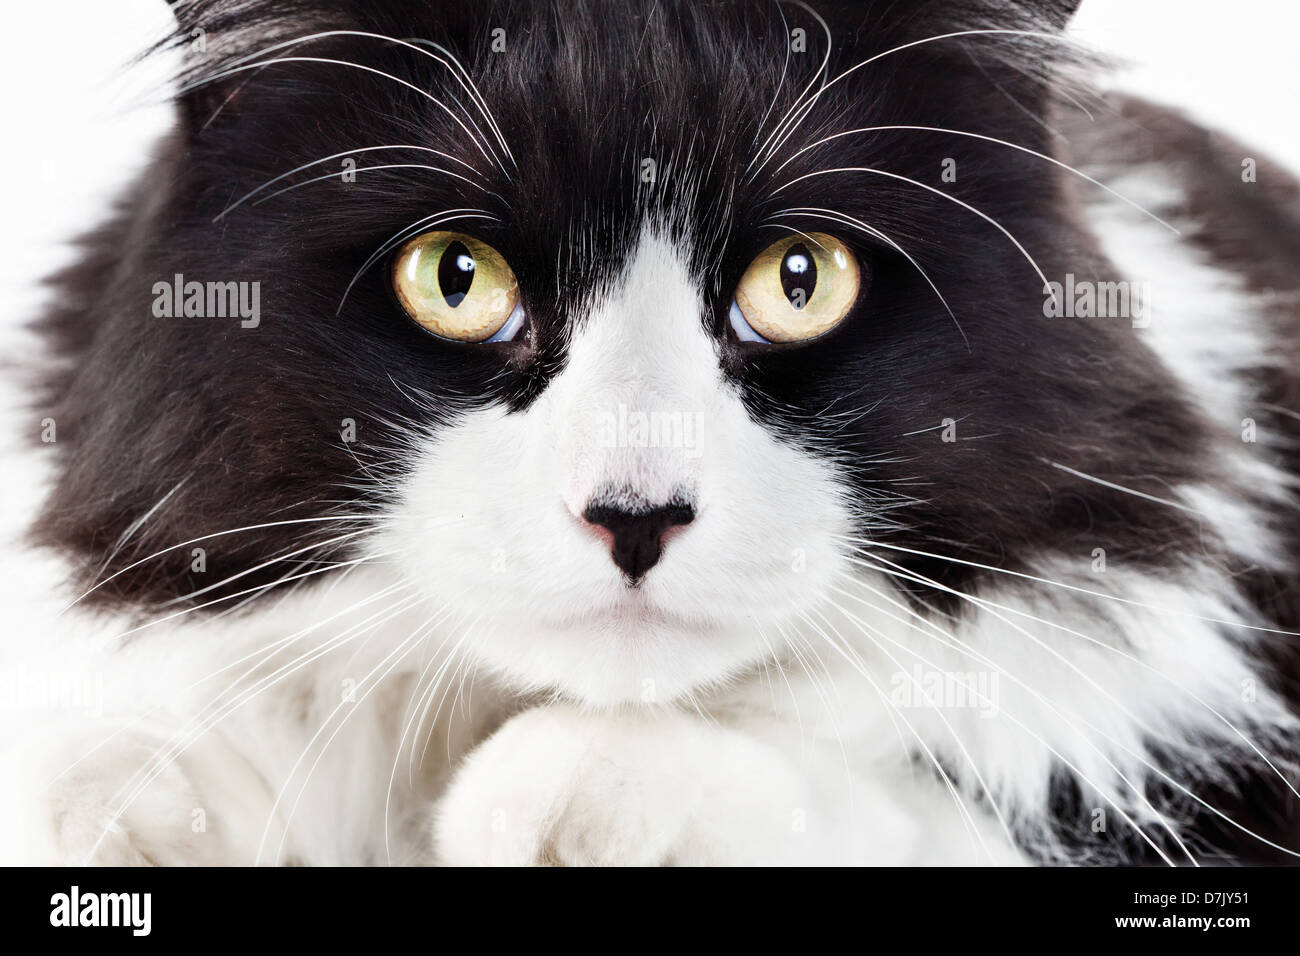 close up intense portrait of fluffly tuxedo cat staring directly and intently  to camera - Stock Image